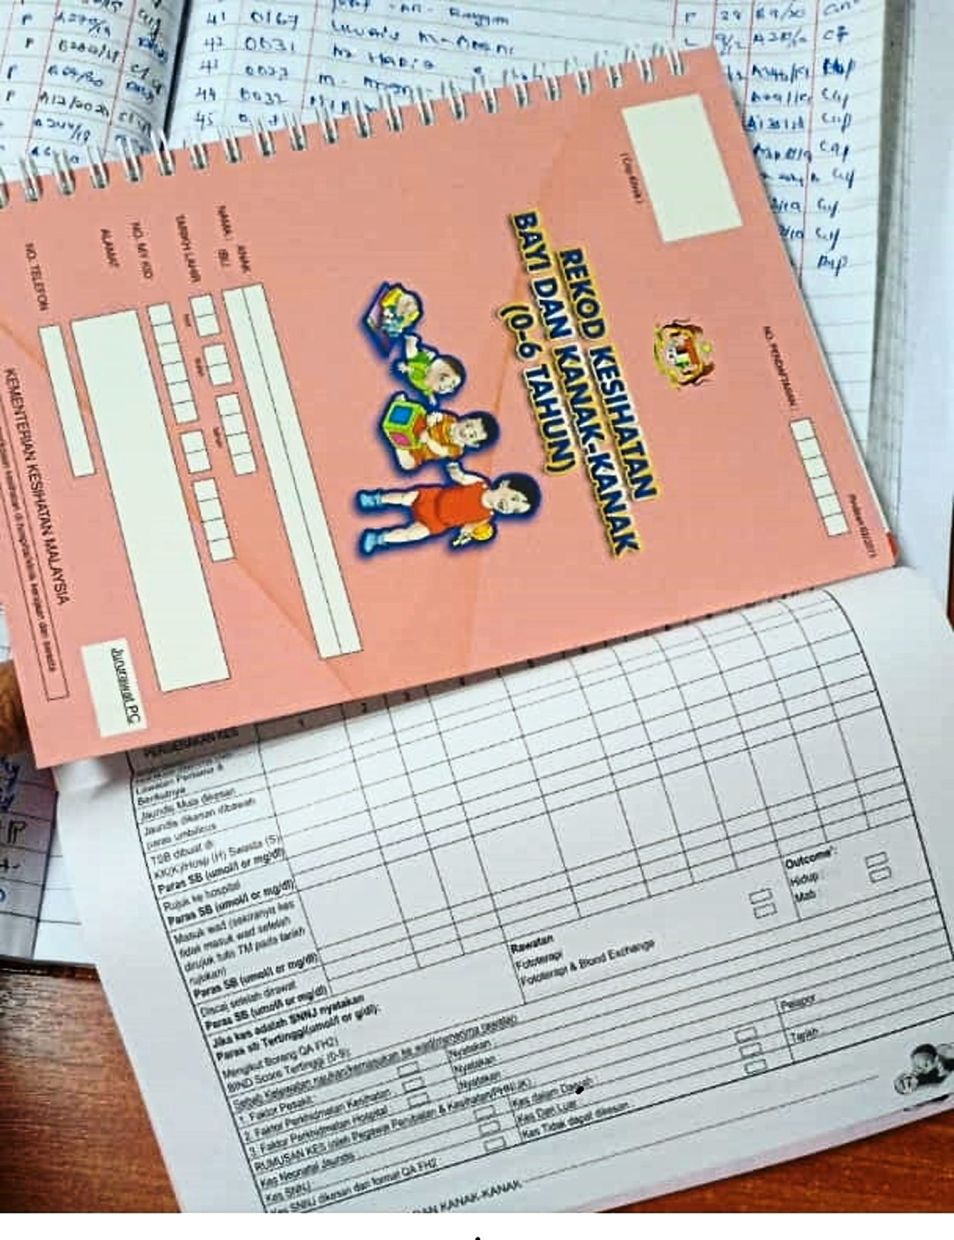 A Malaysian child's health and immunisation record book. If your child has missed one or more vaccination appointments, do schedule a new appointment as soon as possible. — Photos: Immunise4Life